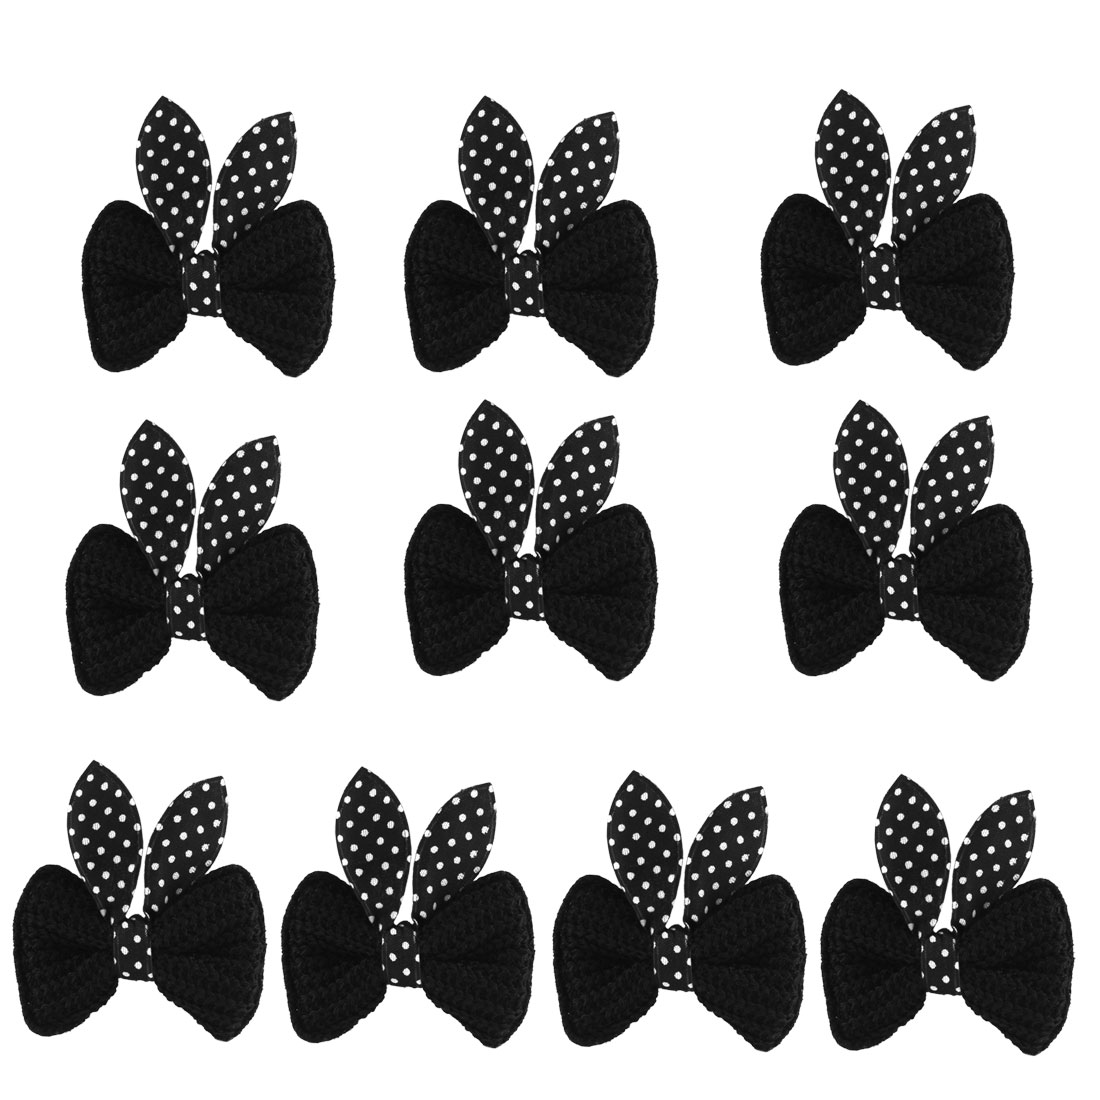 5 Pairs Boutique Girls Bow Hair Clip Alligator Hairclip Barrette Black